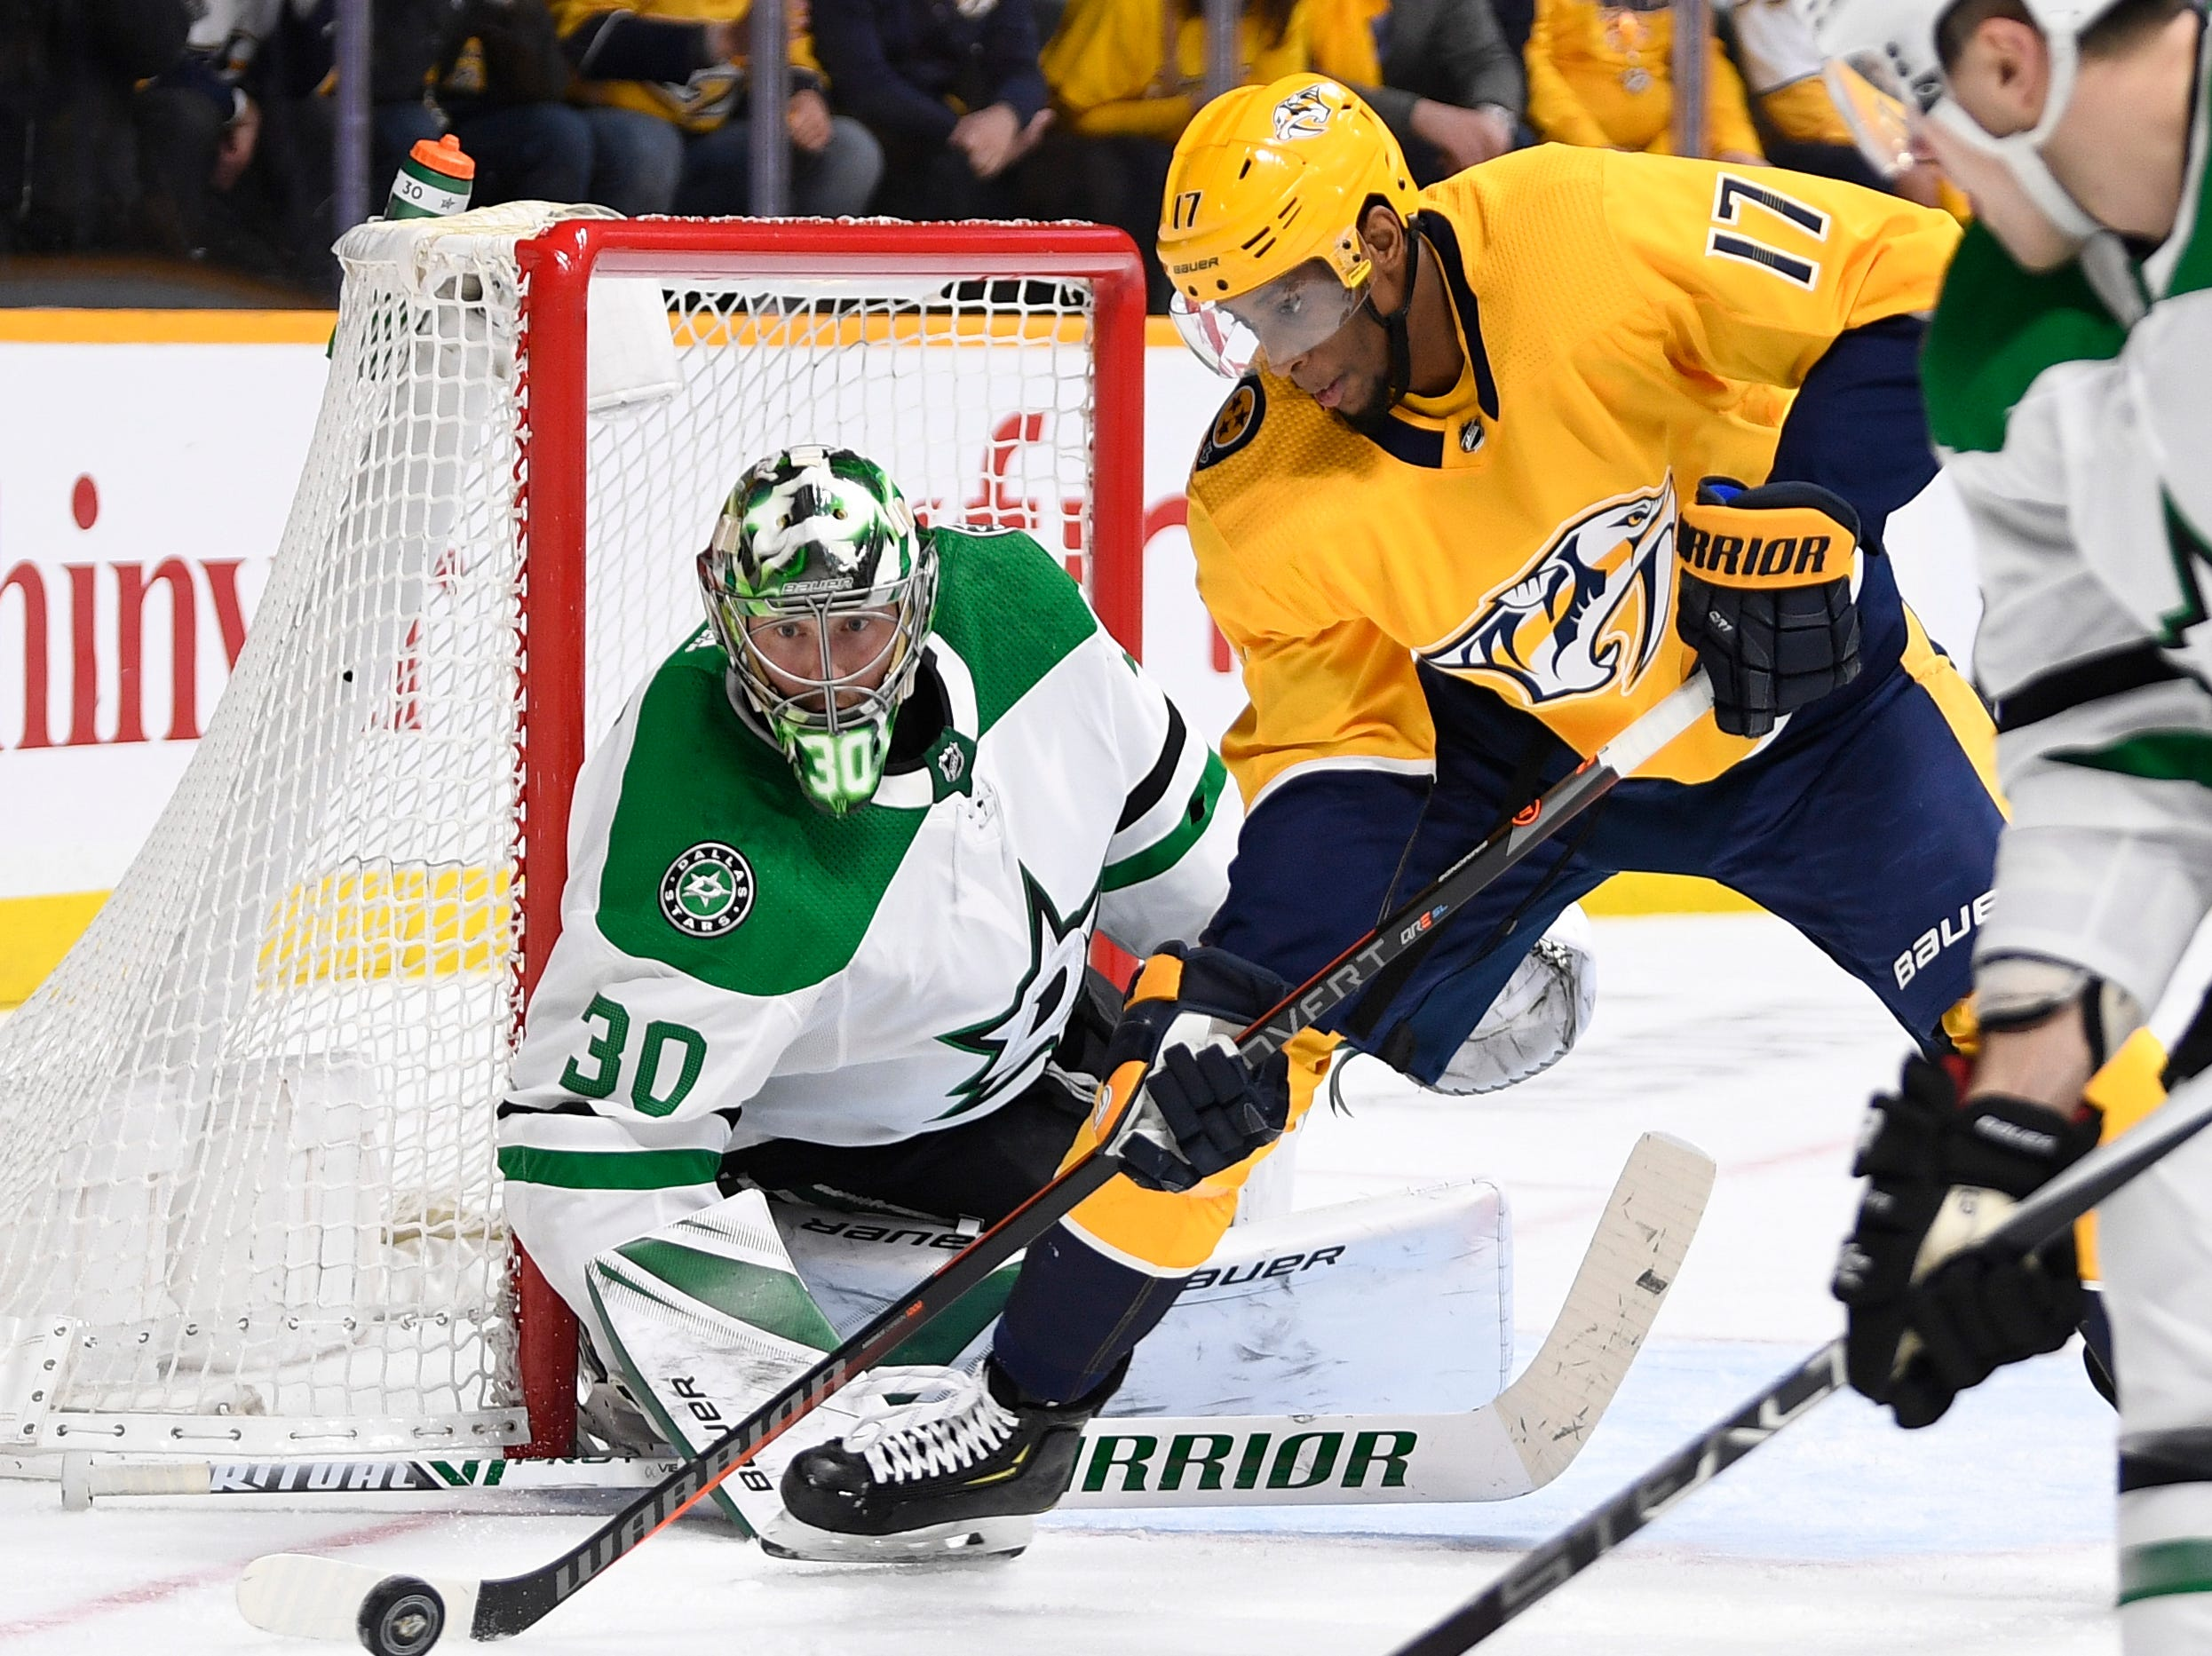 Nashville Predators right wing Wayne Simmonds (17) moves the puck in front of Dallas Stars goaltender Ben Bishop (30) late in the third period of the divisional semifinal game at Bridgestone Arena in Nashville, Tenn., Wednesday, April 10, 2019.